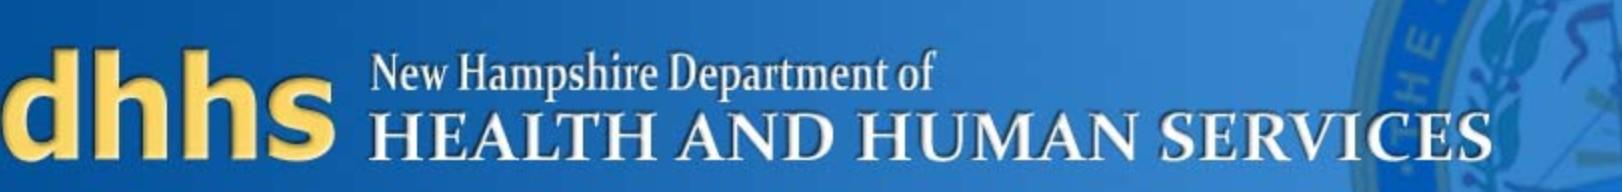 NH Department of Health and Human Services